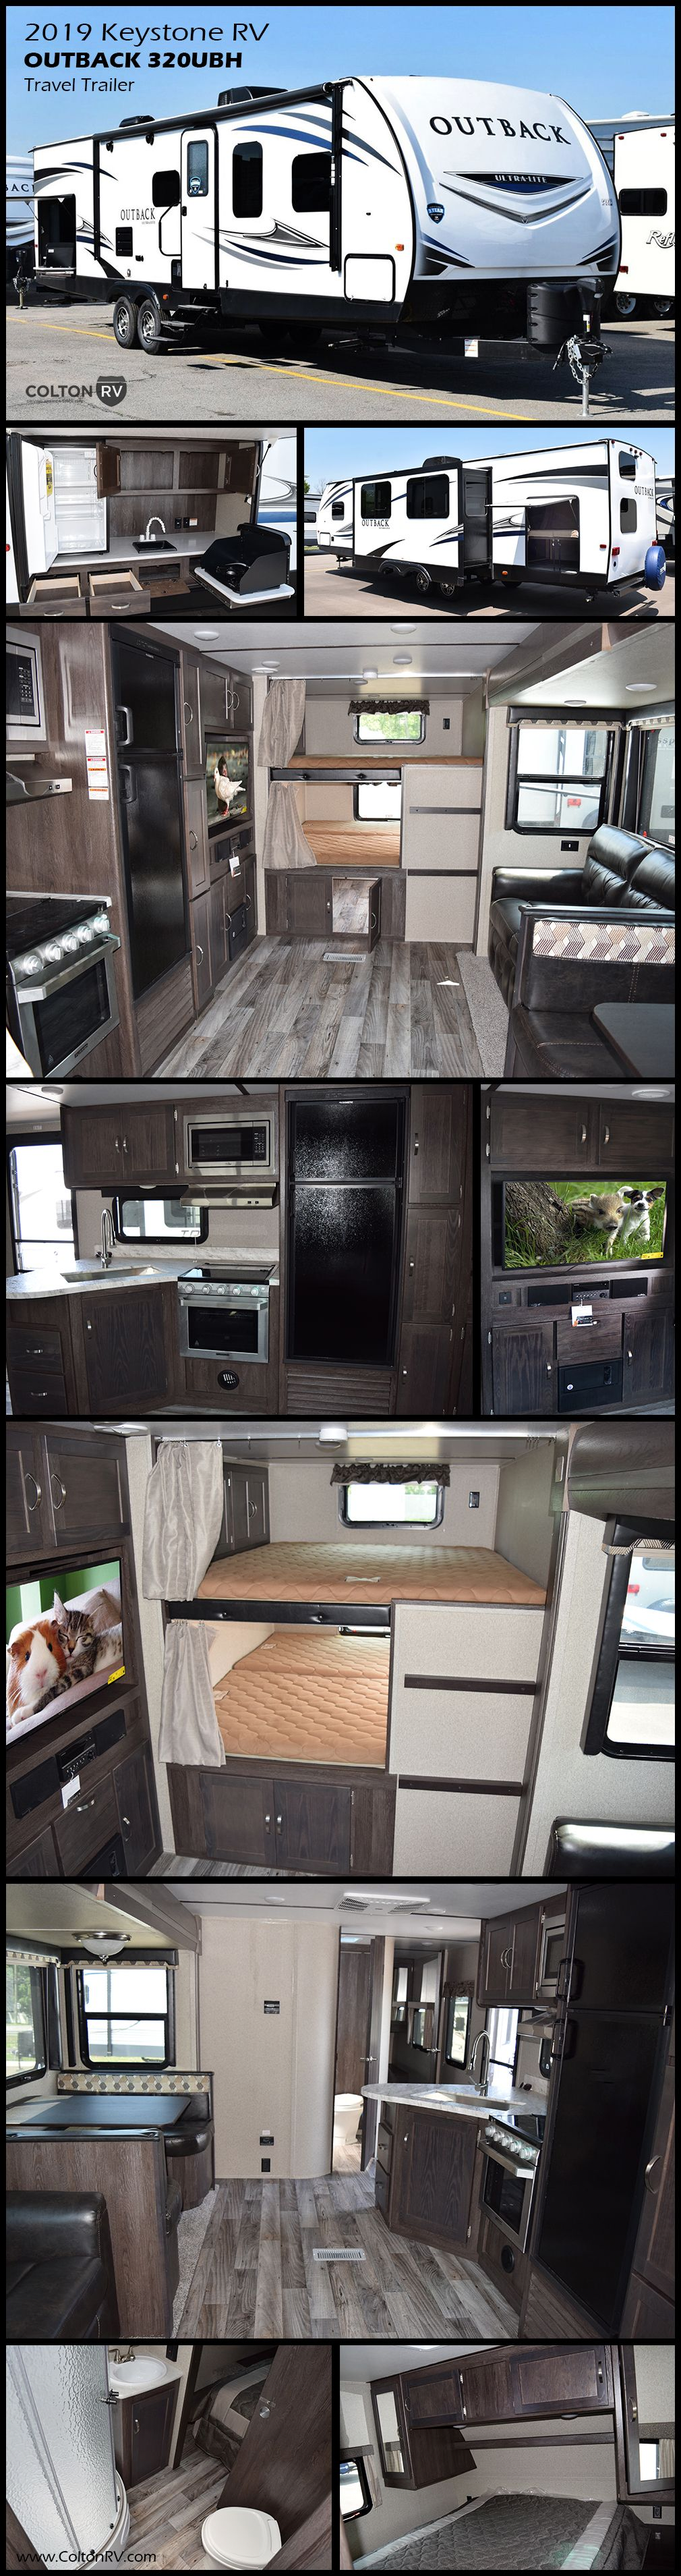 Inventory Colton Rv In Ny Buffalo Rochester And Syracuse Ny Rv Dealer Fifth Wheel Campers And Class A Motorhomes For Sale In Ny Camper Motorhomes For Sale Toy Hauler Camper